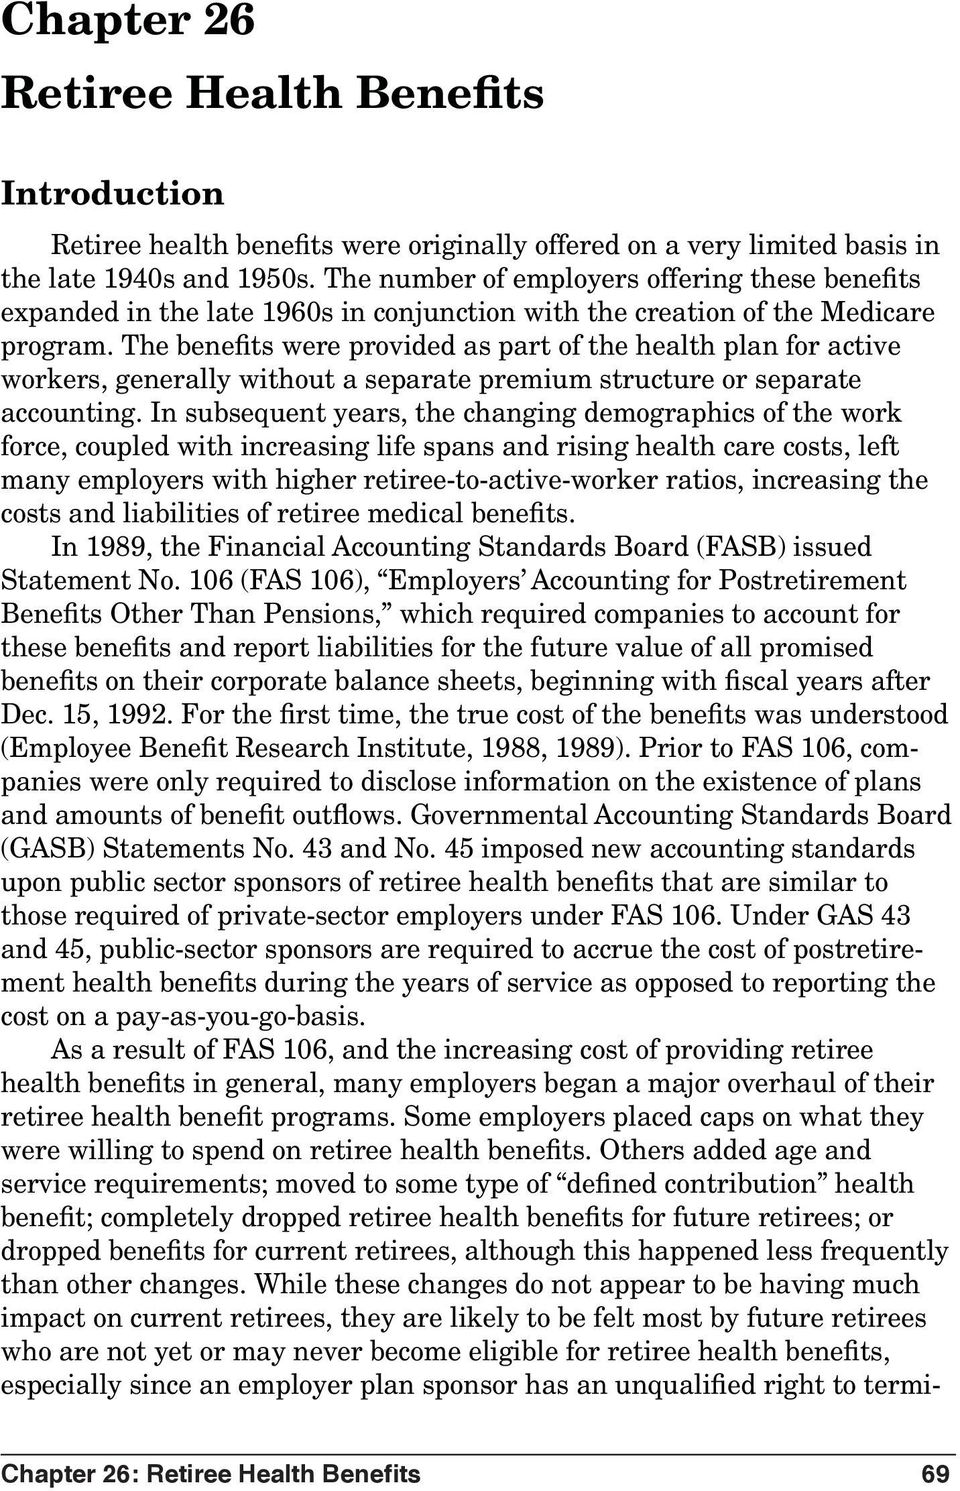 The benefits were provided as part of the health plan for active workers, generally without a separate premium structure or separate accounting.